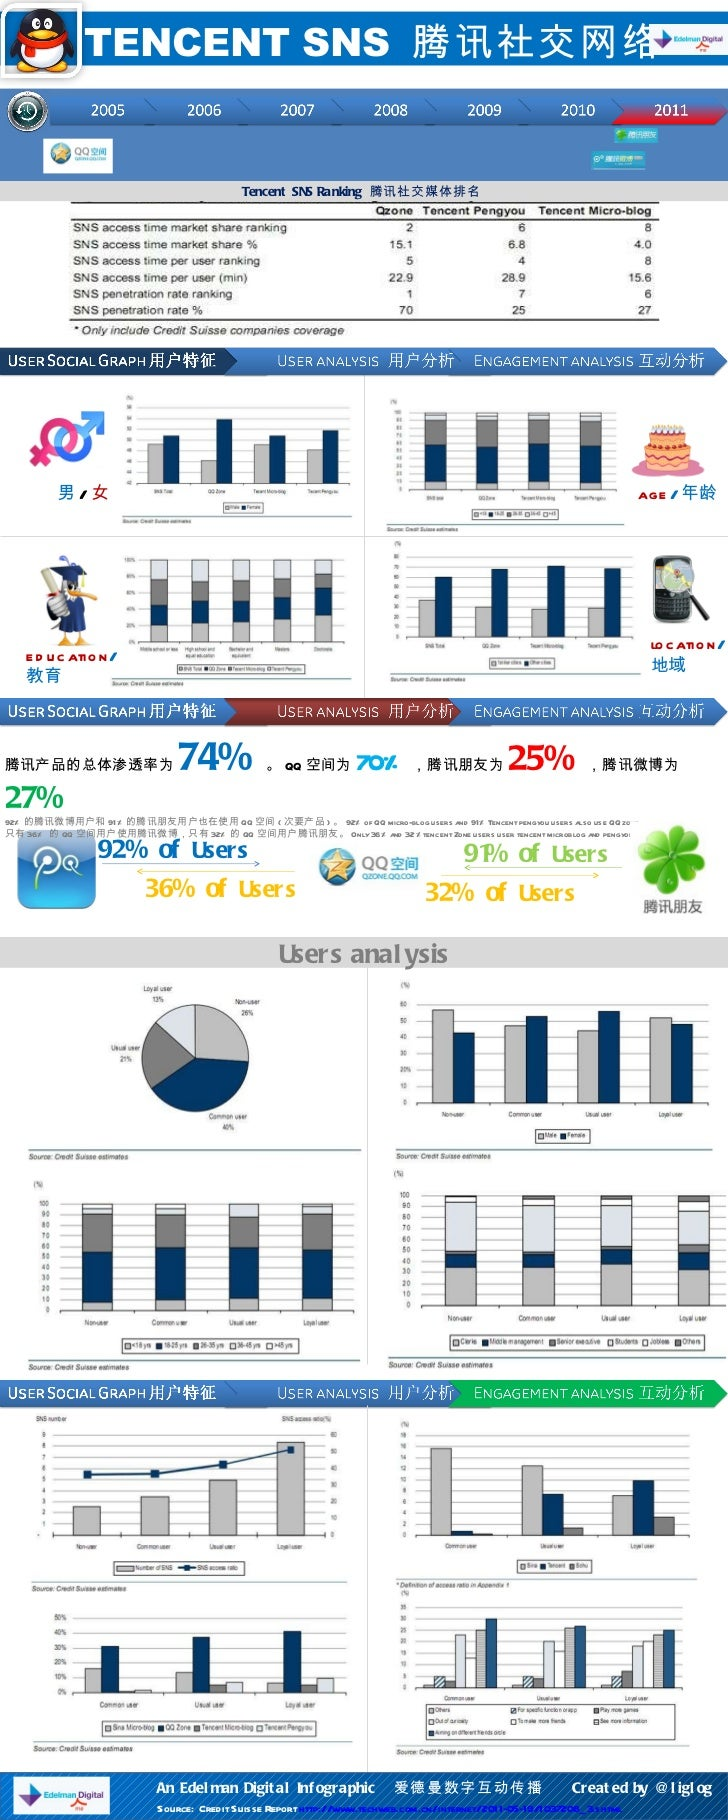 91% of  Users   92% of  Users   TENCENT SNS  腾讯社交网络 Tencent SNS Ranking  腾讯社交媒体排